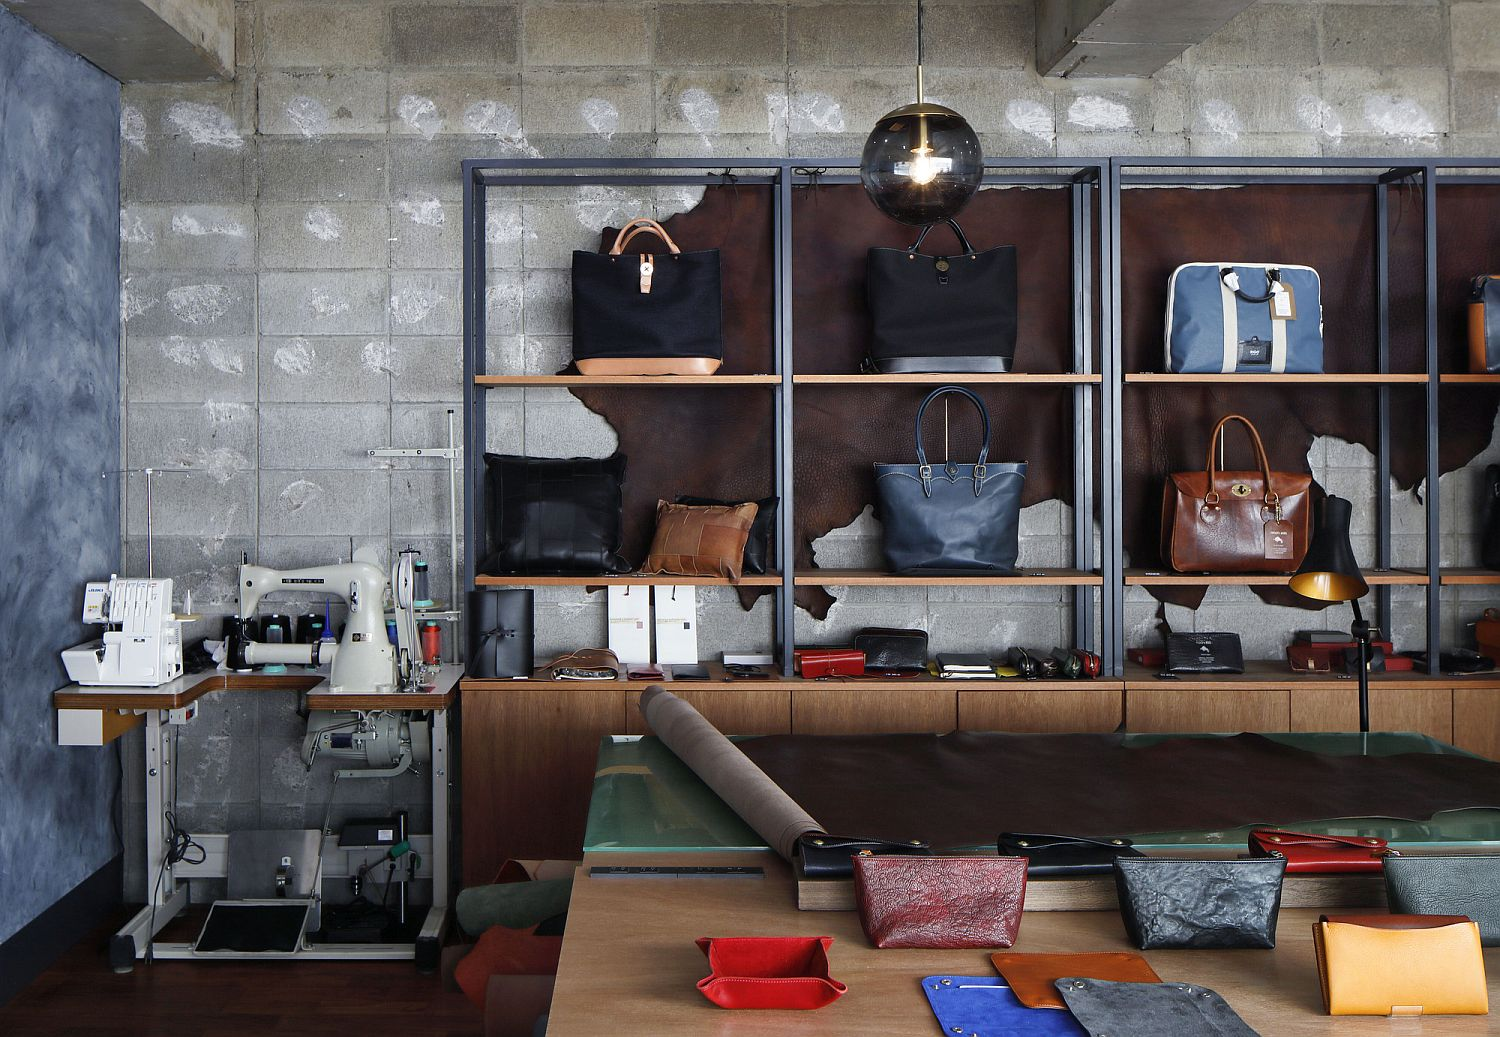 Exposed concrete walls give the interior of the shop a modern industrial appeal